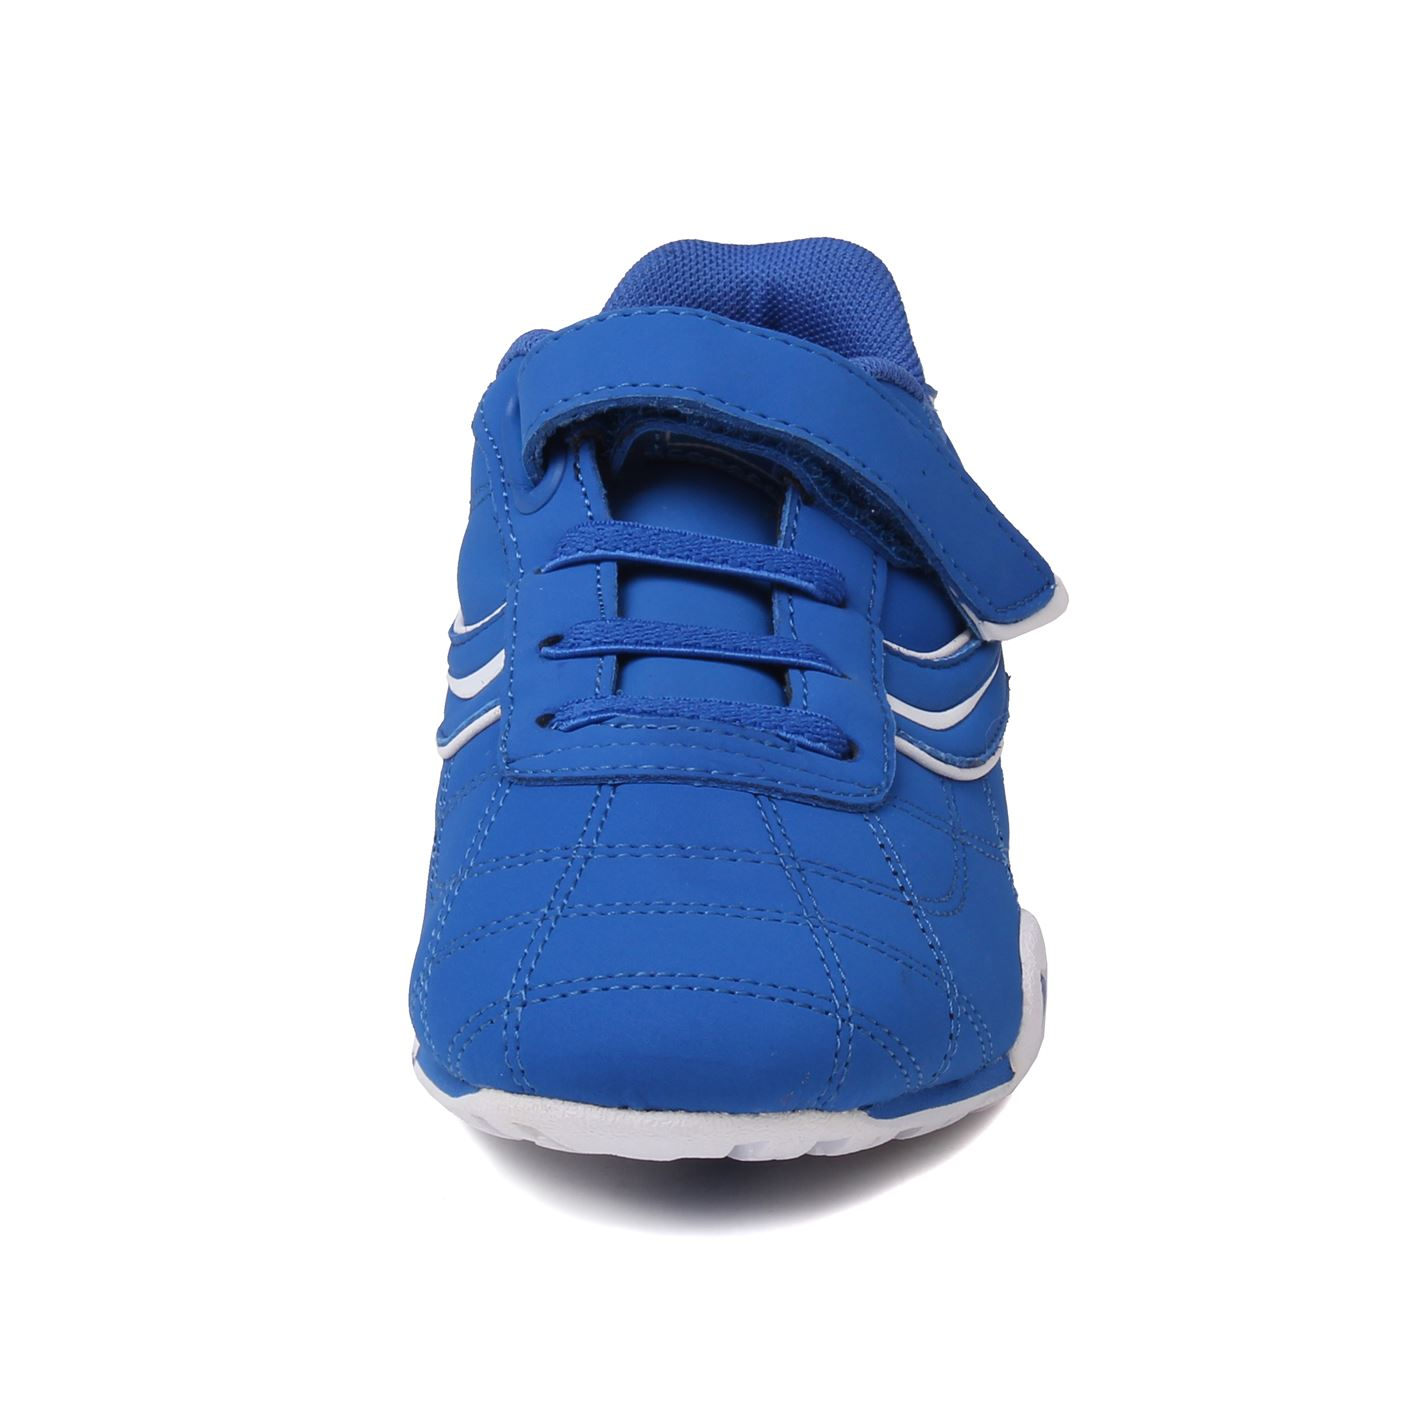 Lonsdale-Kids-Camden-Child-Boys-Trainers-Lace-Up-Casual-Sports-Shoes-Footwear thumbnail 13